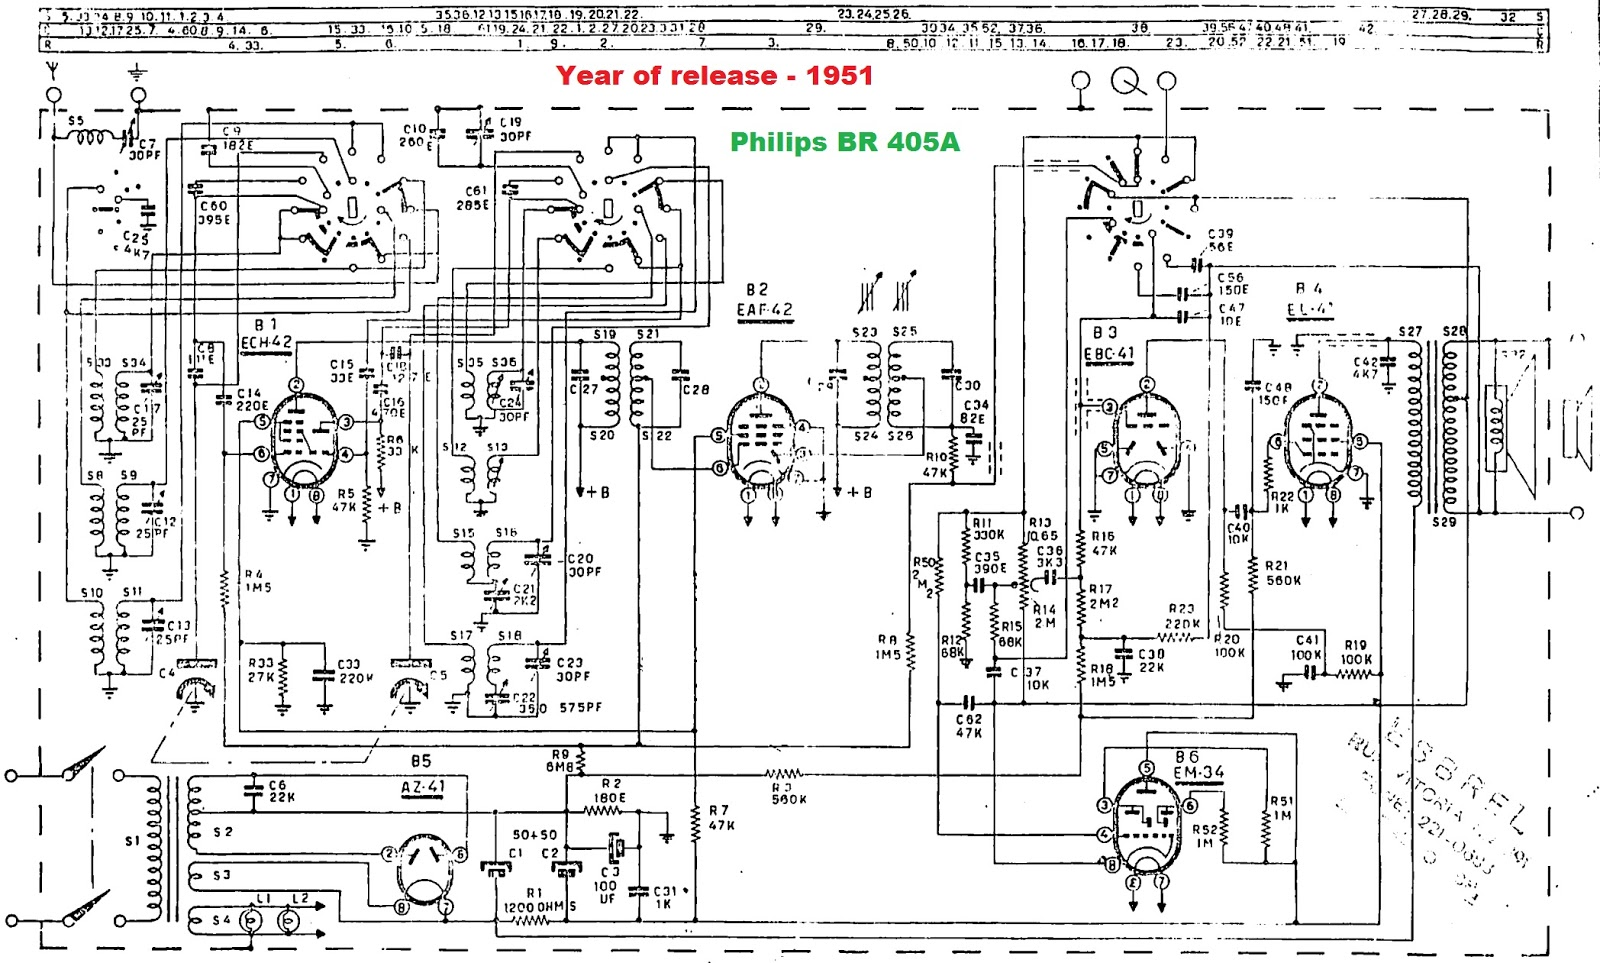 Philips Br 405a Acdc Radio Circuit Diagram Schematic Diagrams. Circuit Diagram. Wiring. Philips Tube Radio Schematics At Scoala.co